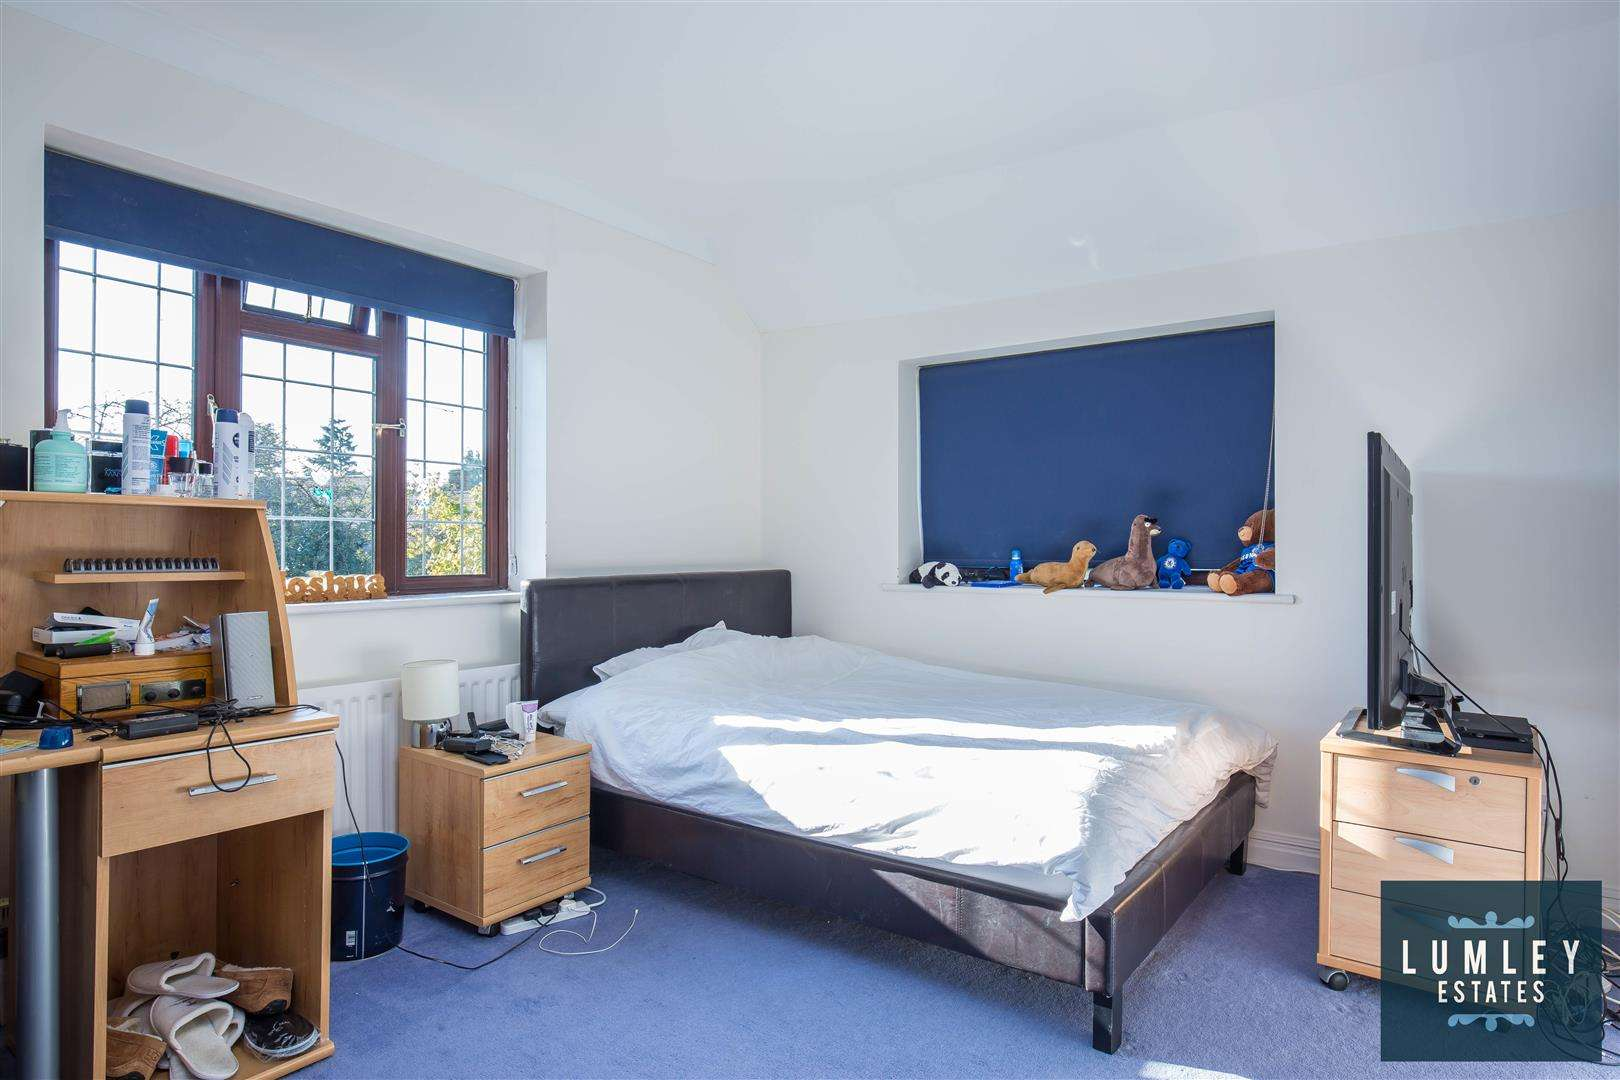 6 bed to rent - (Property Image 9)